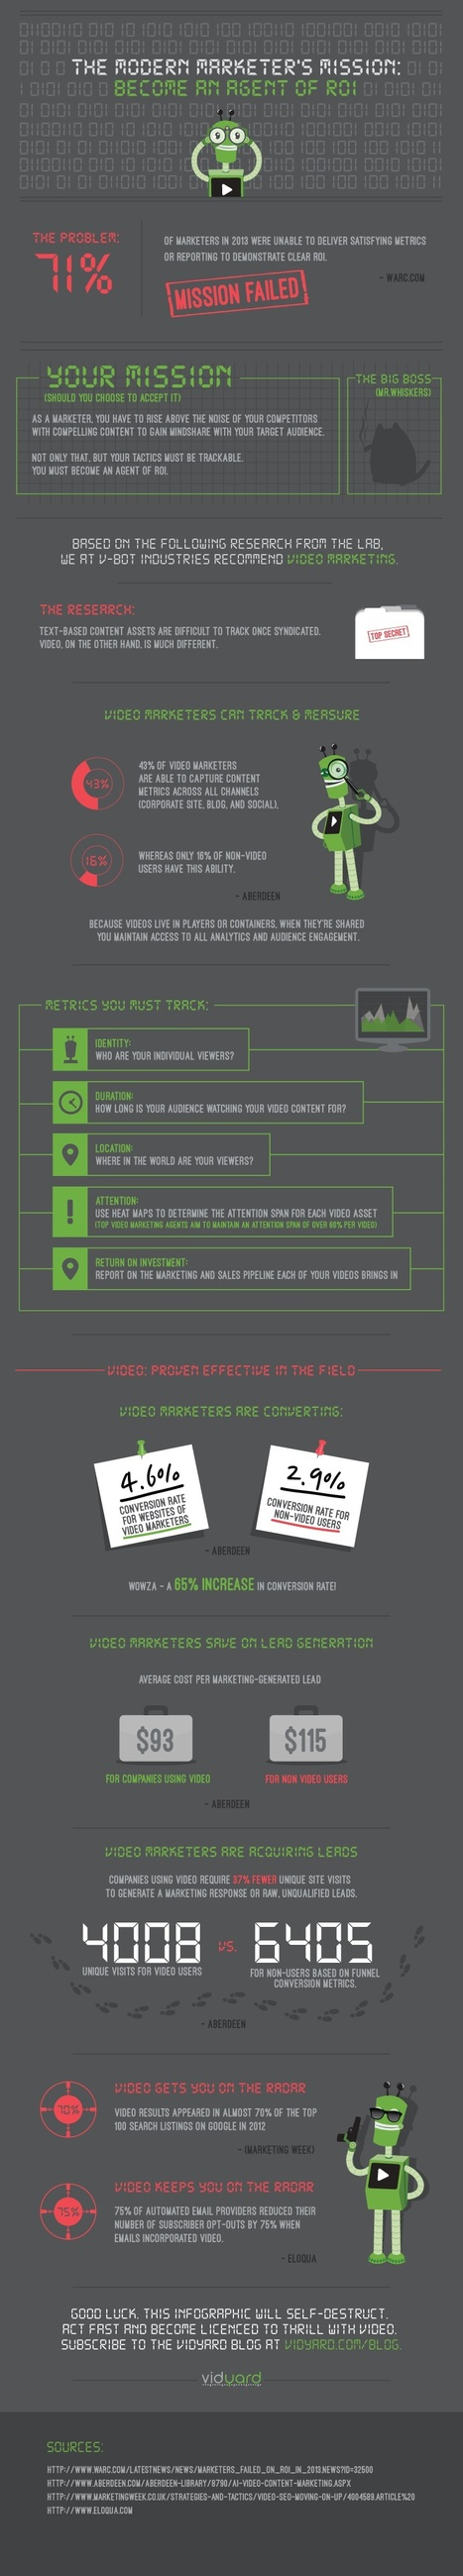 Video Marketers Prove ROI Better Than Text-Based Marketers [Infographic] | Integrated Brand Communications | Scoop.it